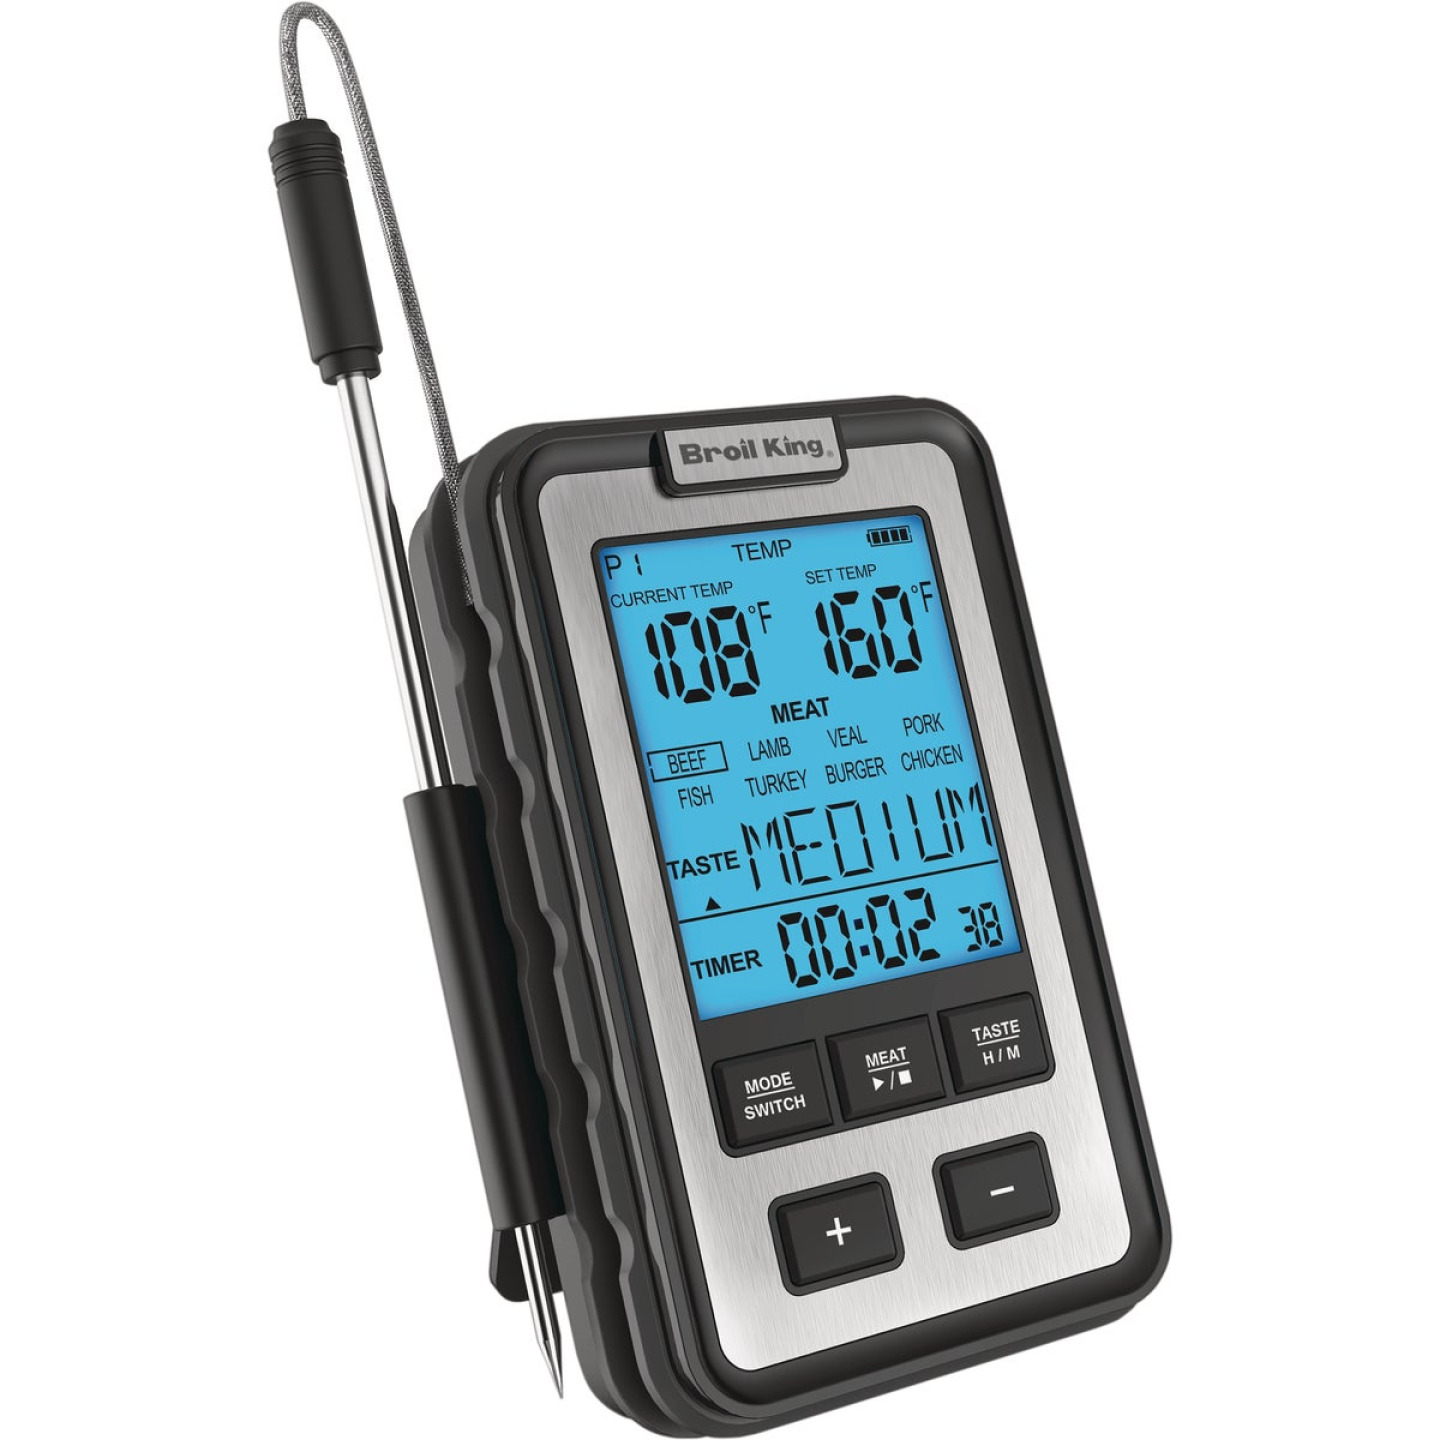 Broil King Digital Side Shelf Dual Probe Thermometer Image 5